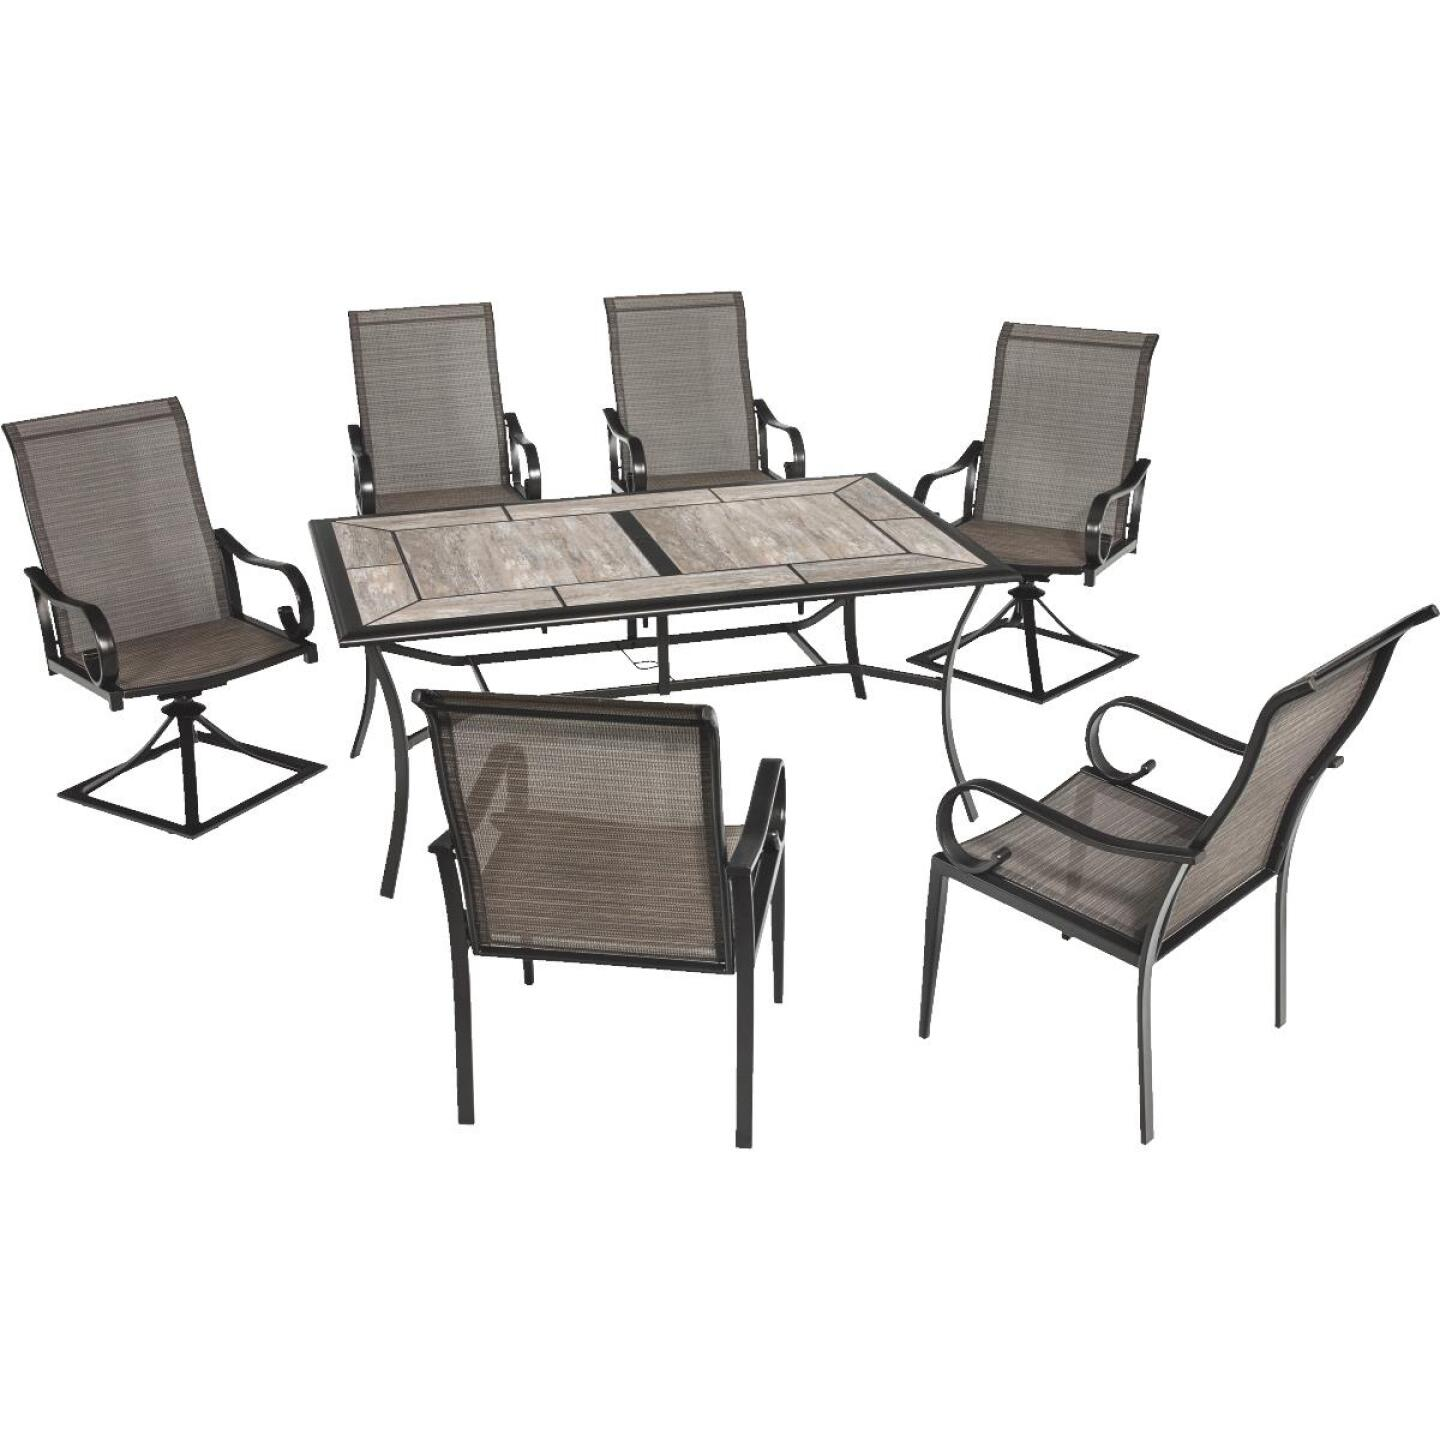 Outdoor Expressions Berkshire 7-Piece Dining Set Image 12